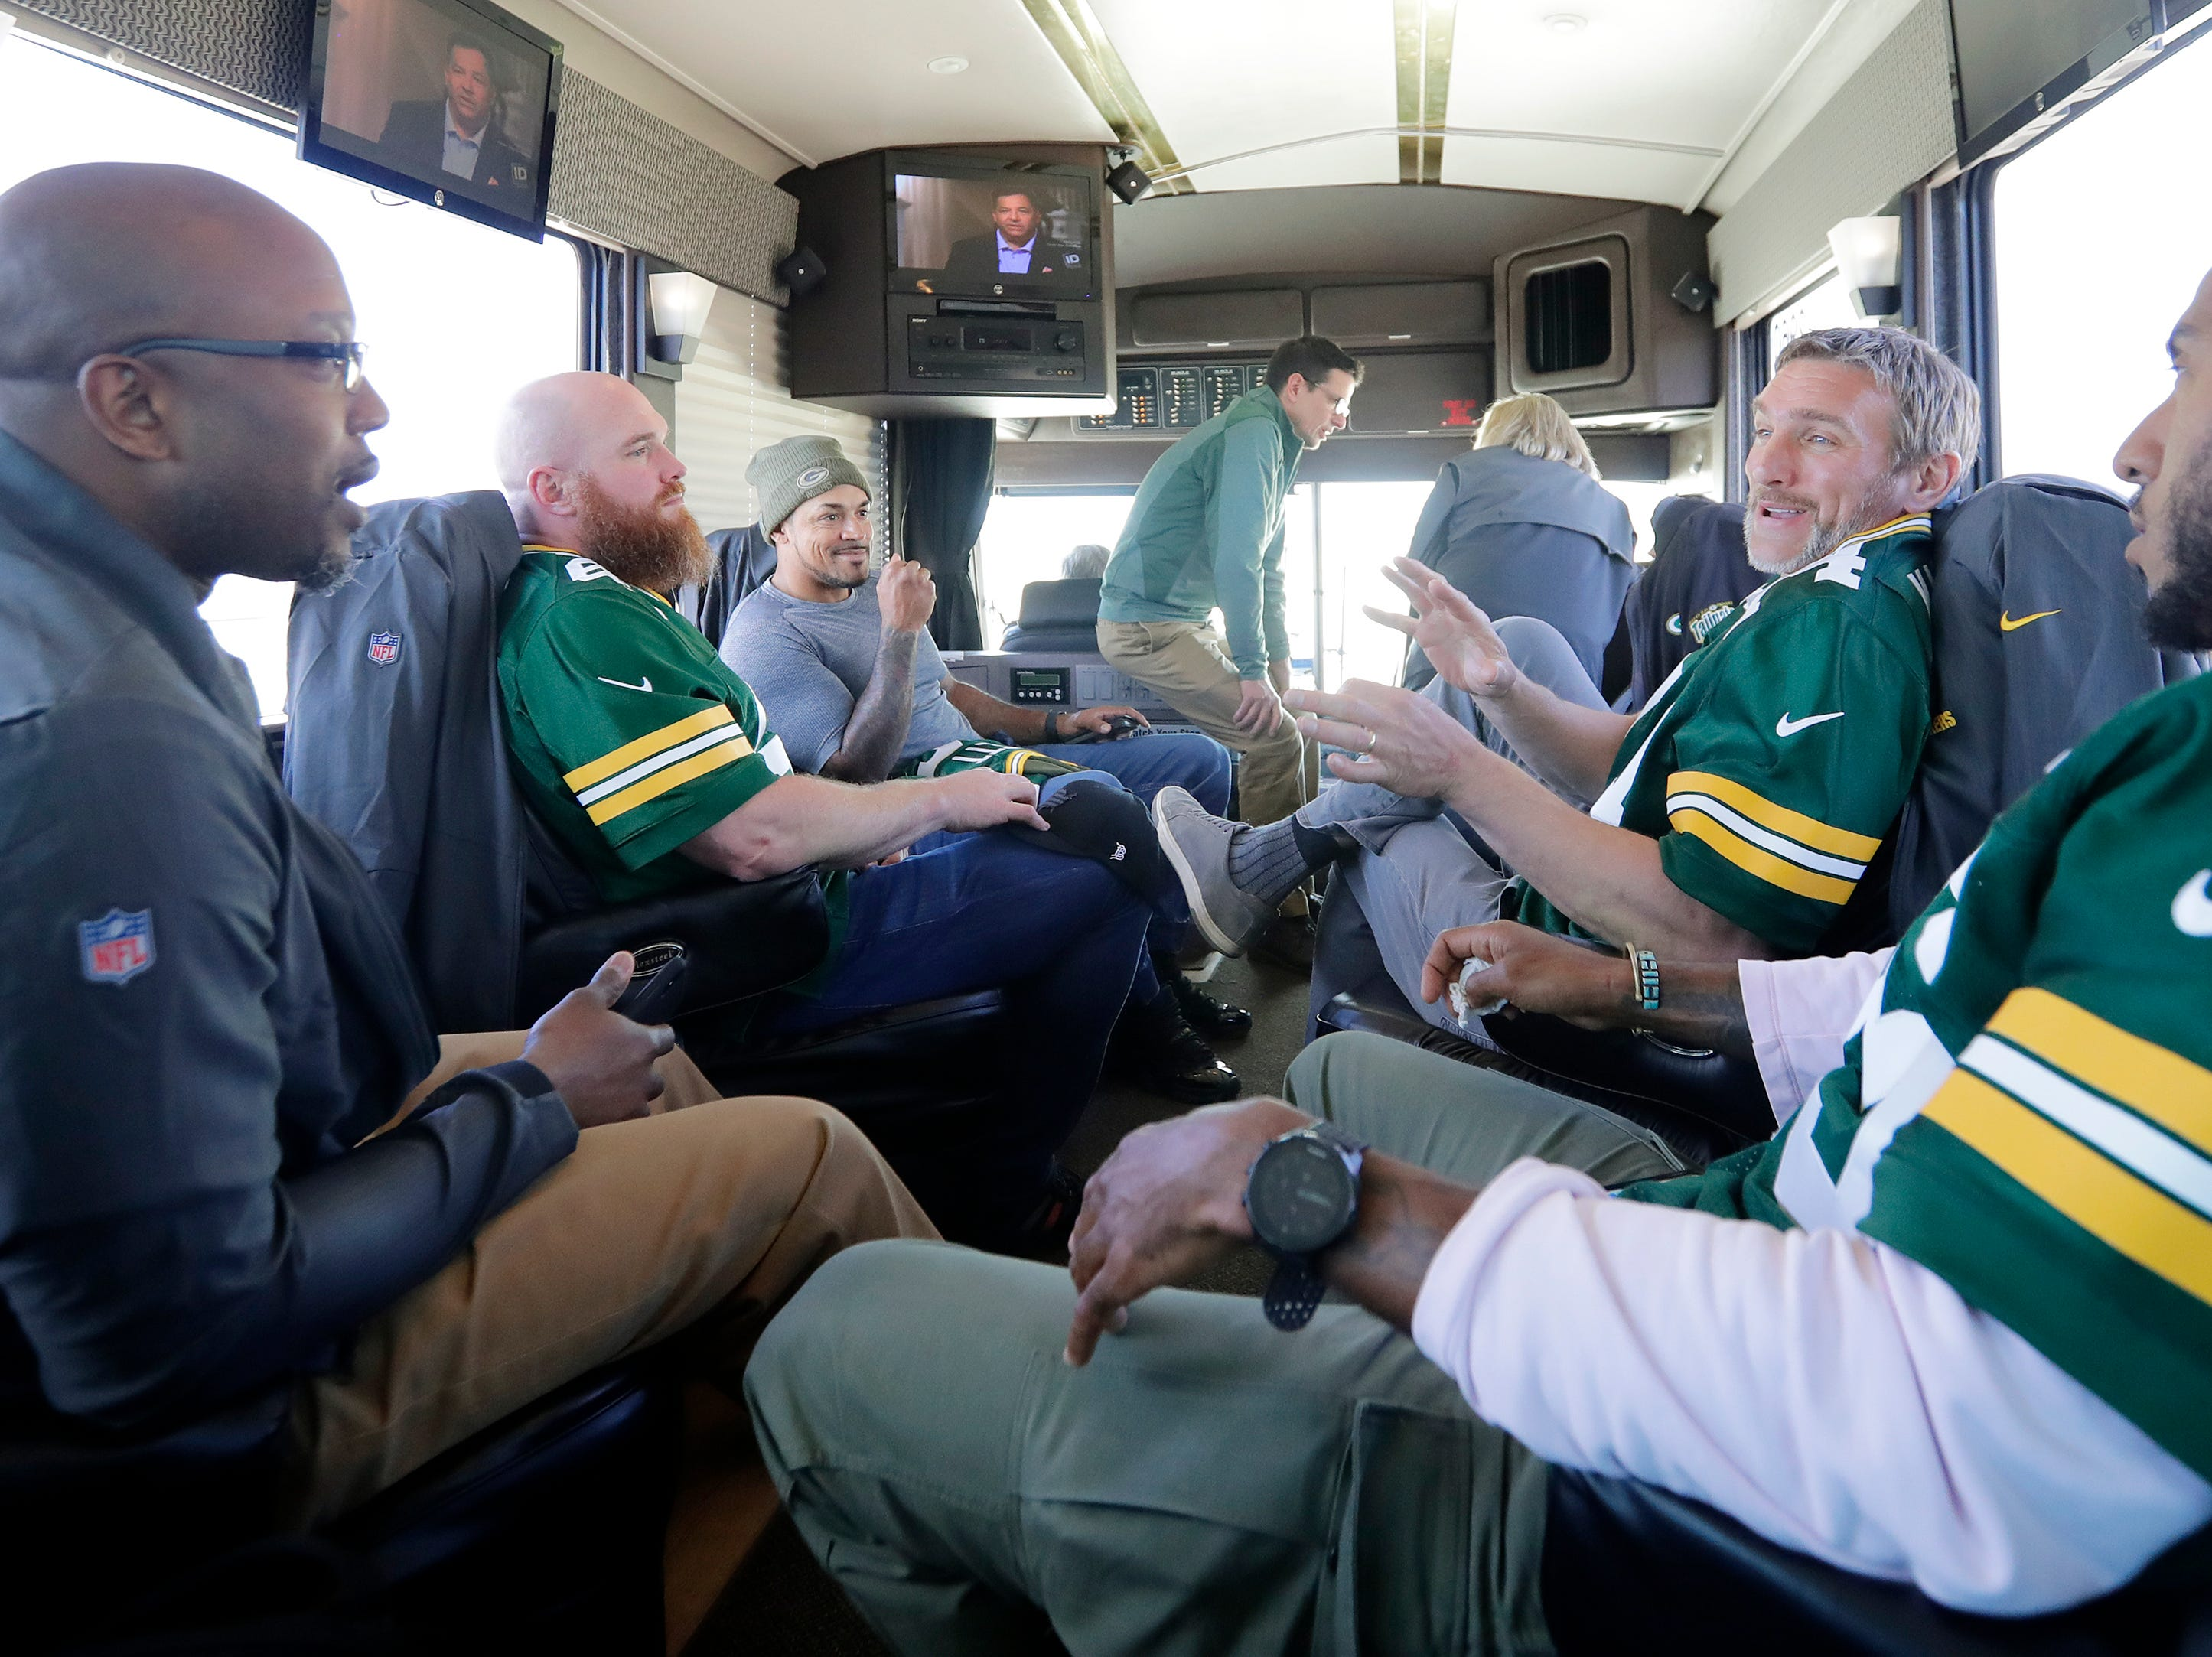 Former Green Bay Packers player Aaron Kampman talks on the bus between stops on the Packers Tailgate Tour on Tuesday, April 9, 2019 in Clintonville, Wis.